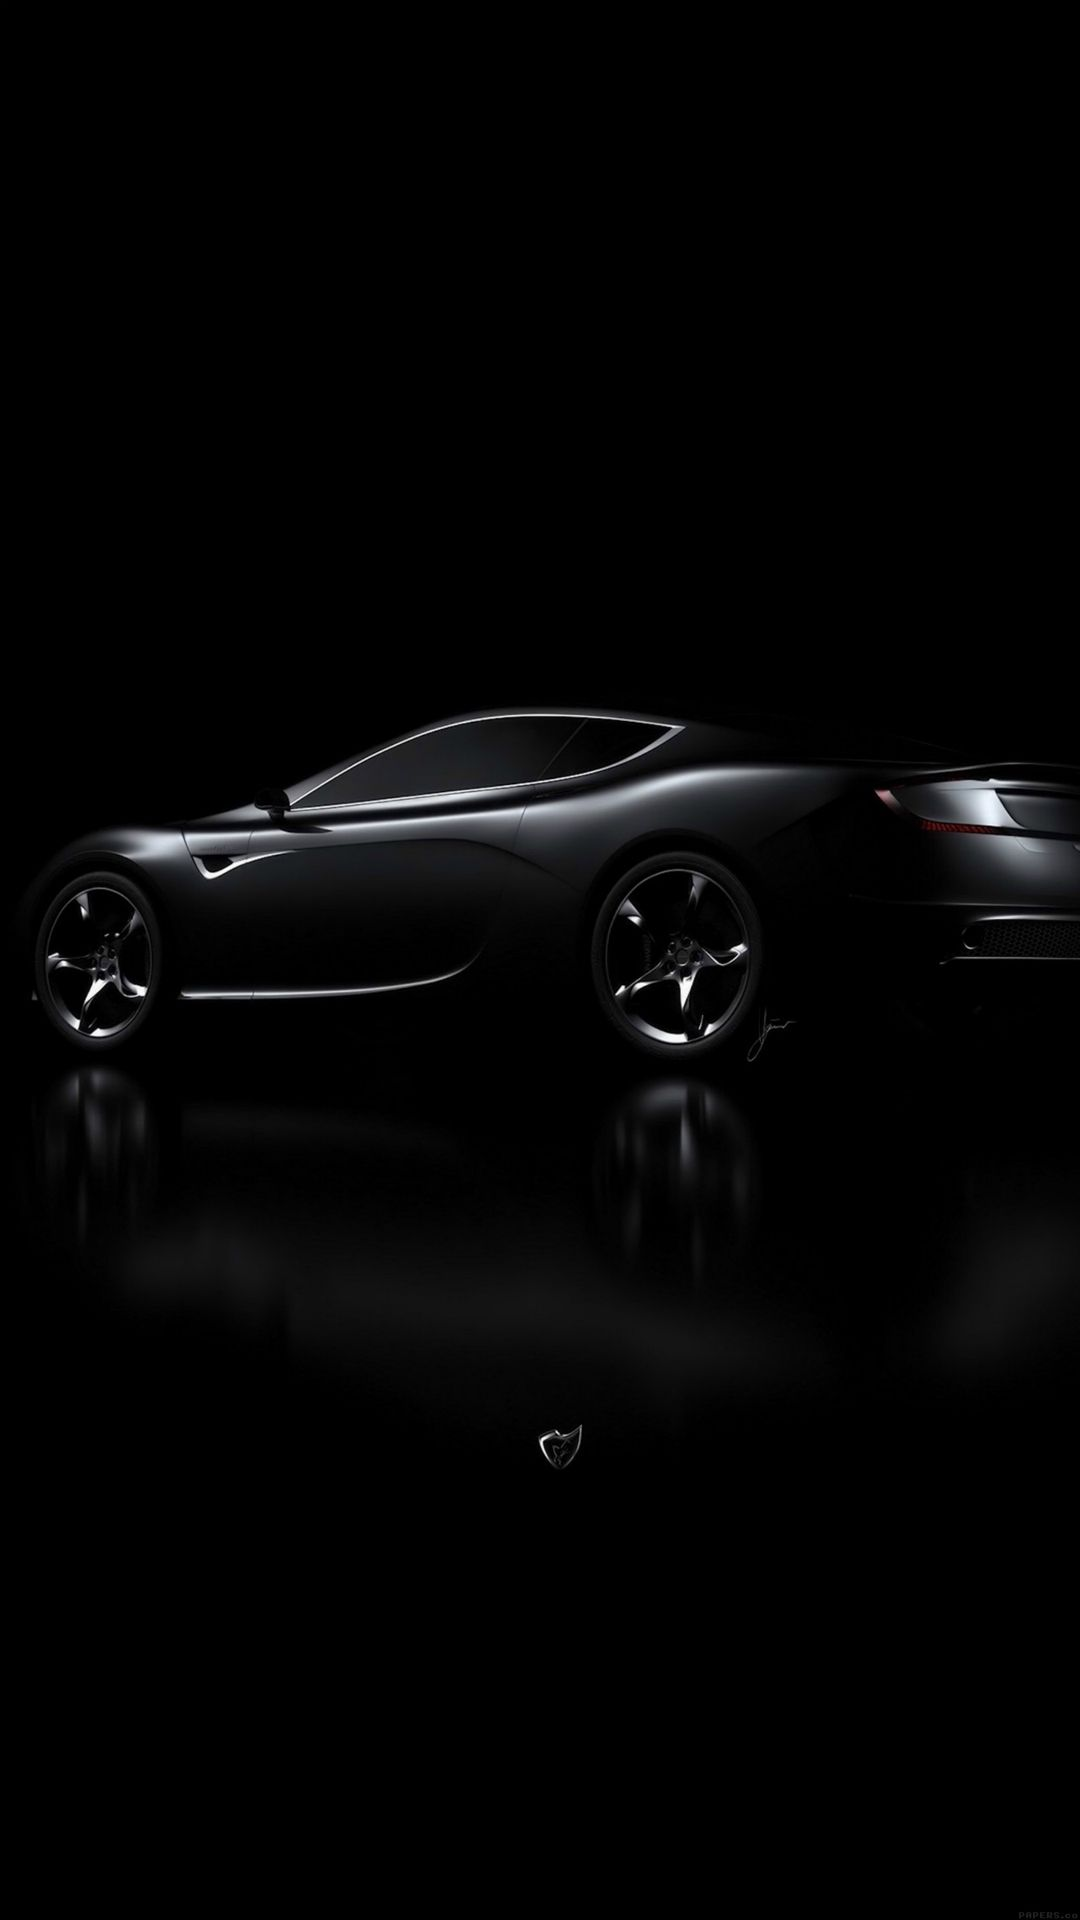 Aston Martin Black Car Dark Iphone 6 Plus Wallpaper Iphone 6 8